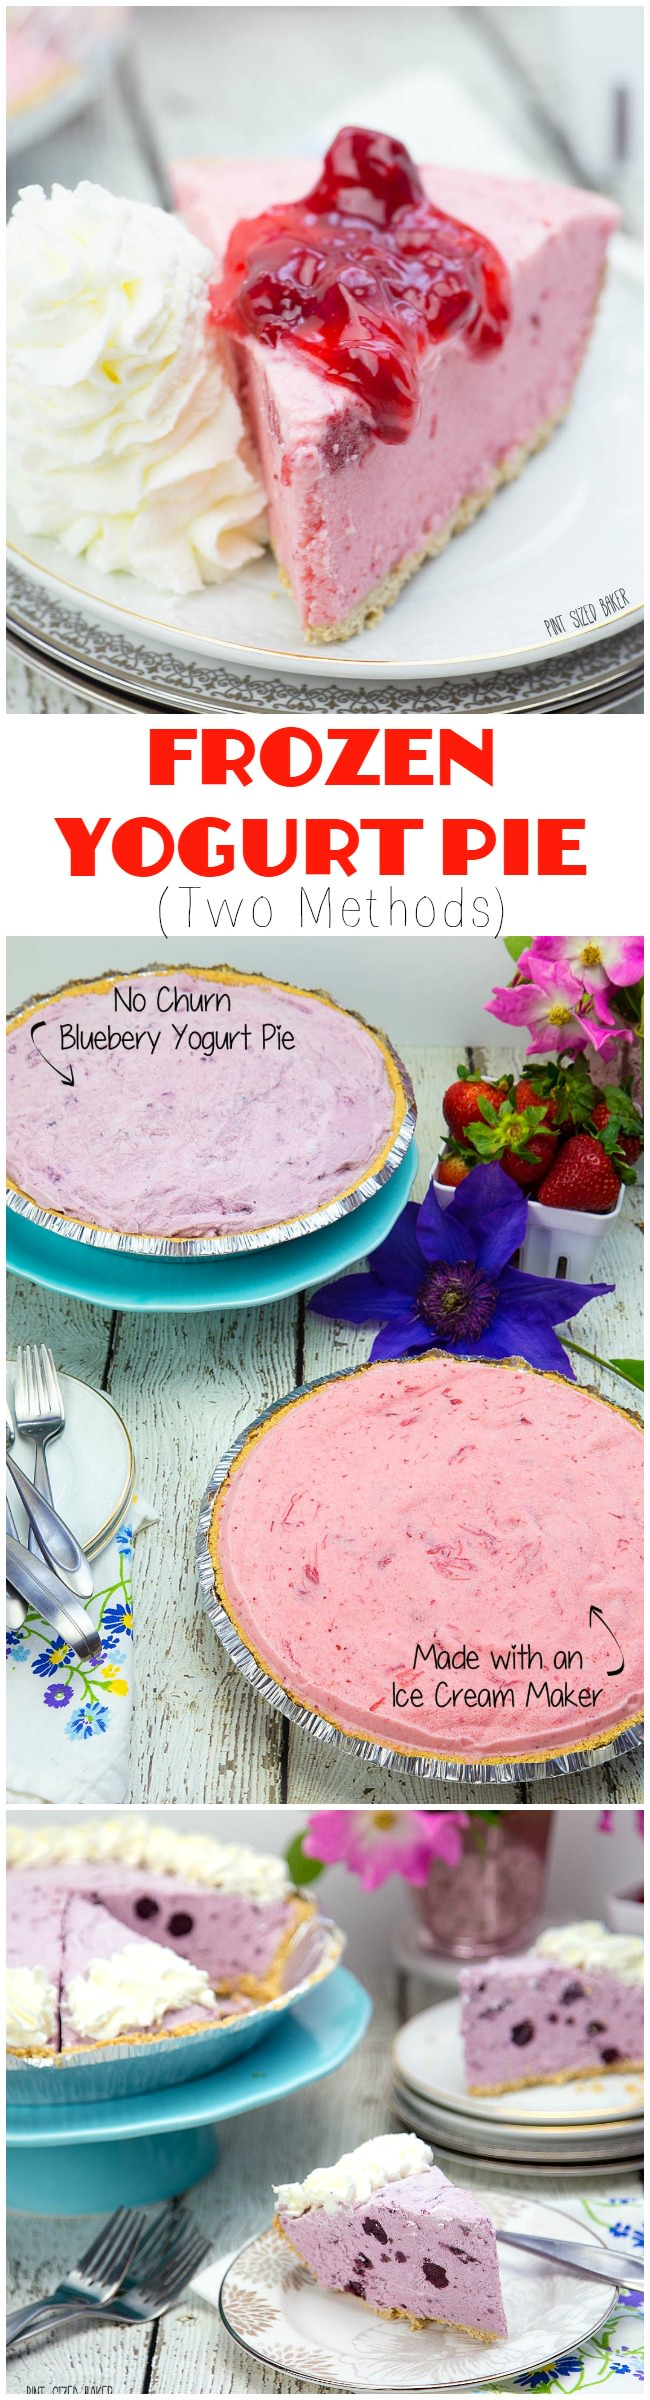 This summer enjoy a Frozen Yogurt Pie! Made with yogurt and your favorite pie filling flavor. Recipes for no churn method and using an ice cream maker.